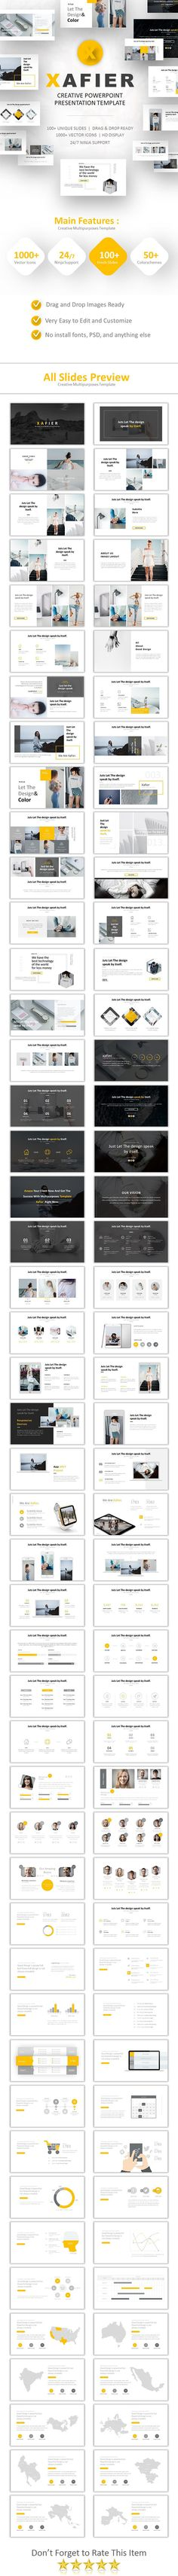 Professional Business Profile Template Professional Business Plan And Company Profile Template Indesign .